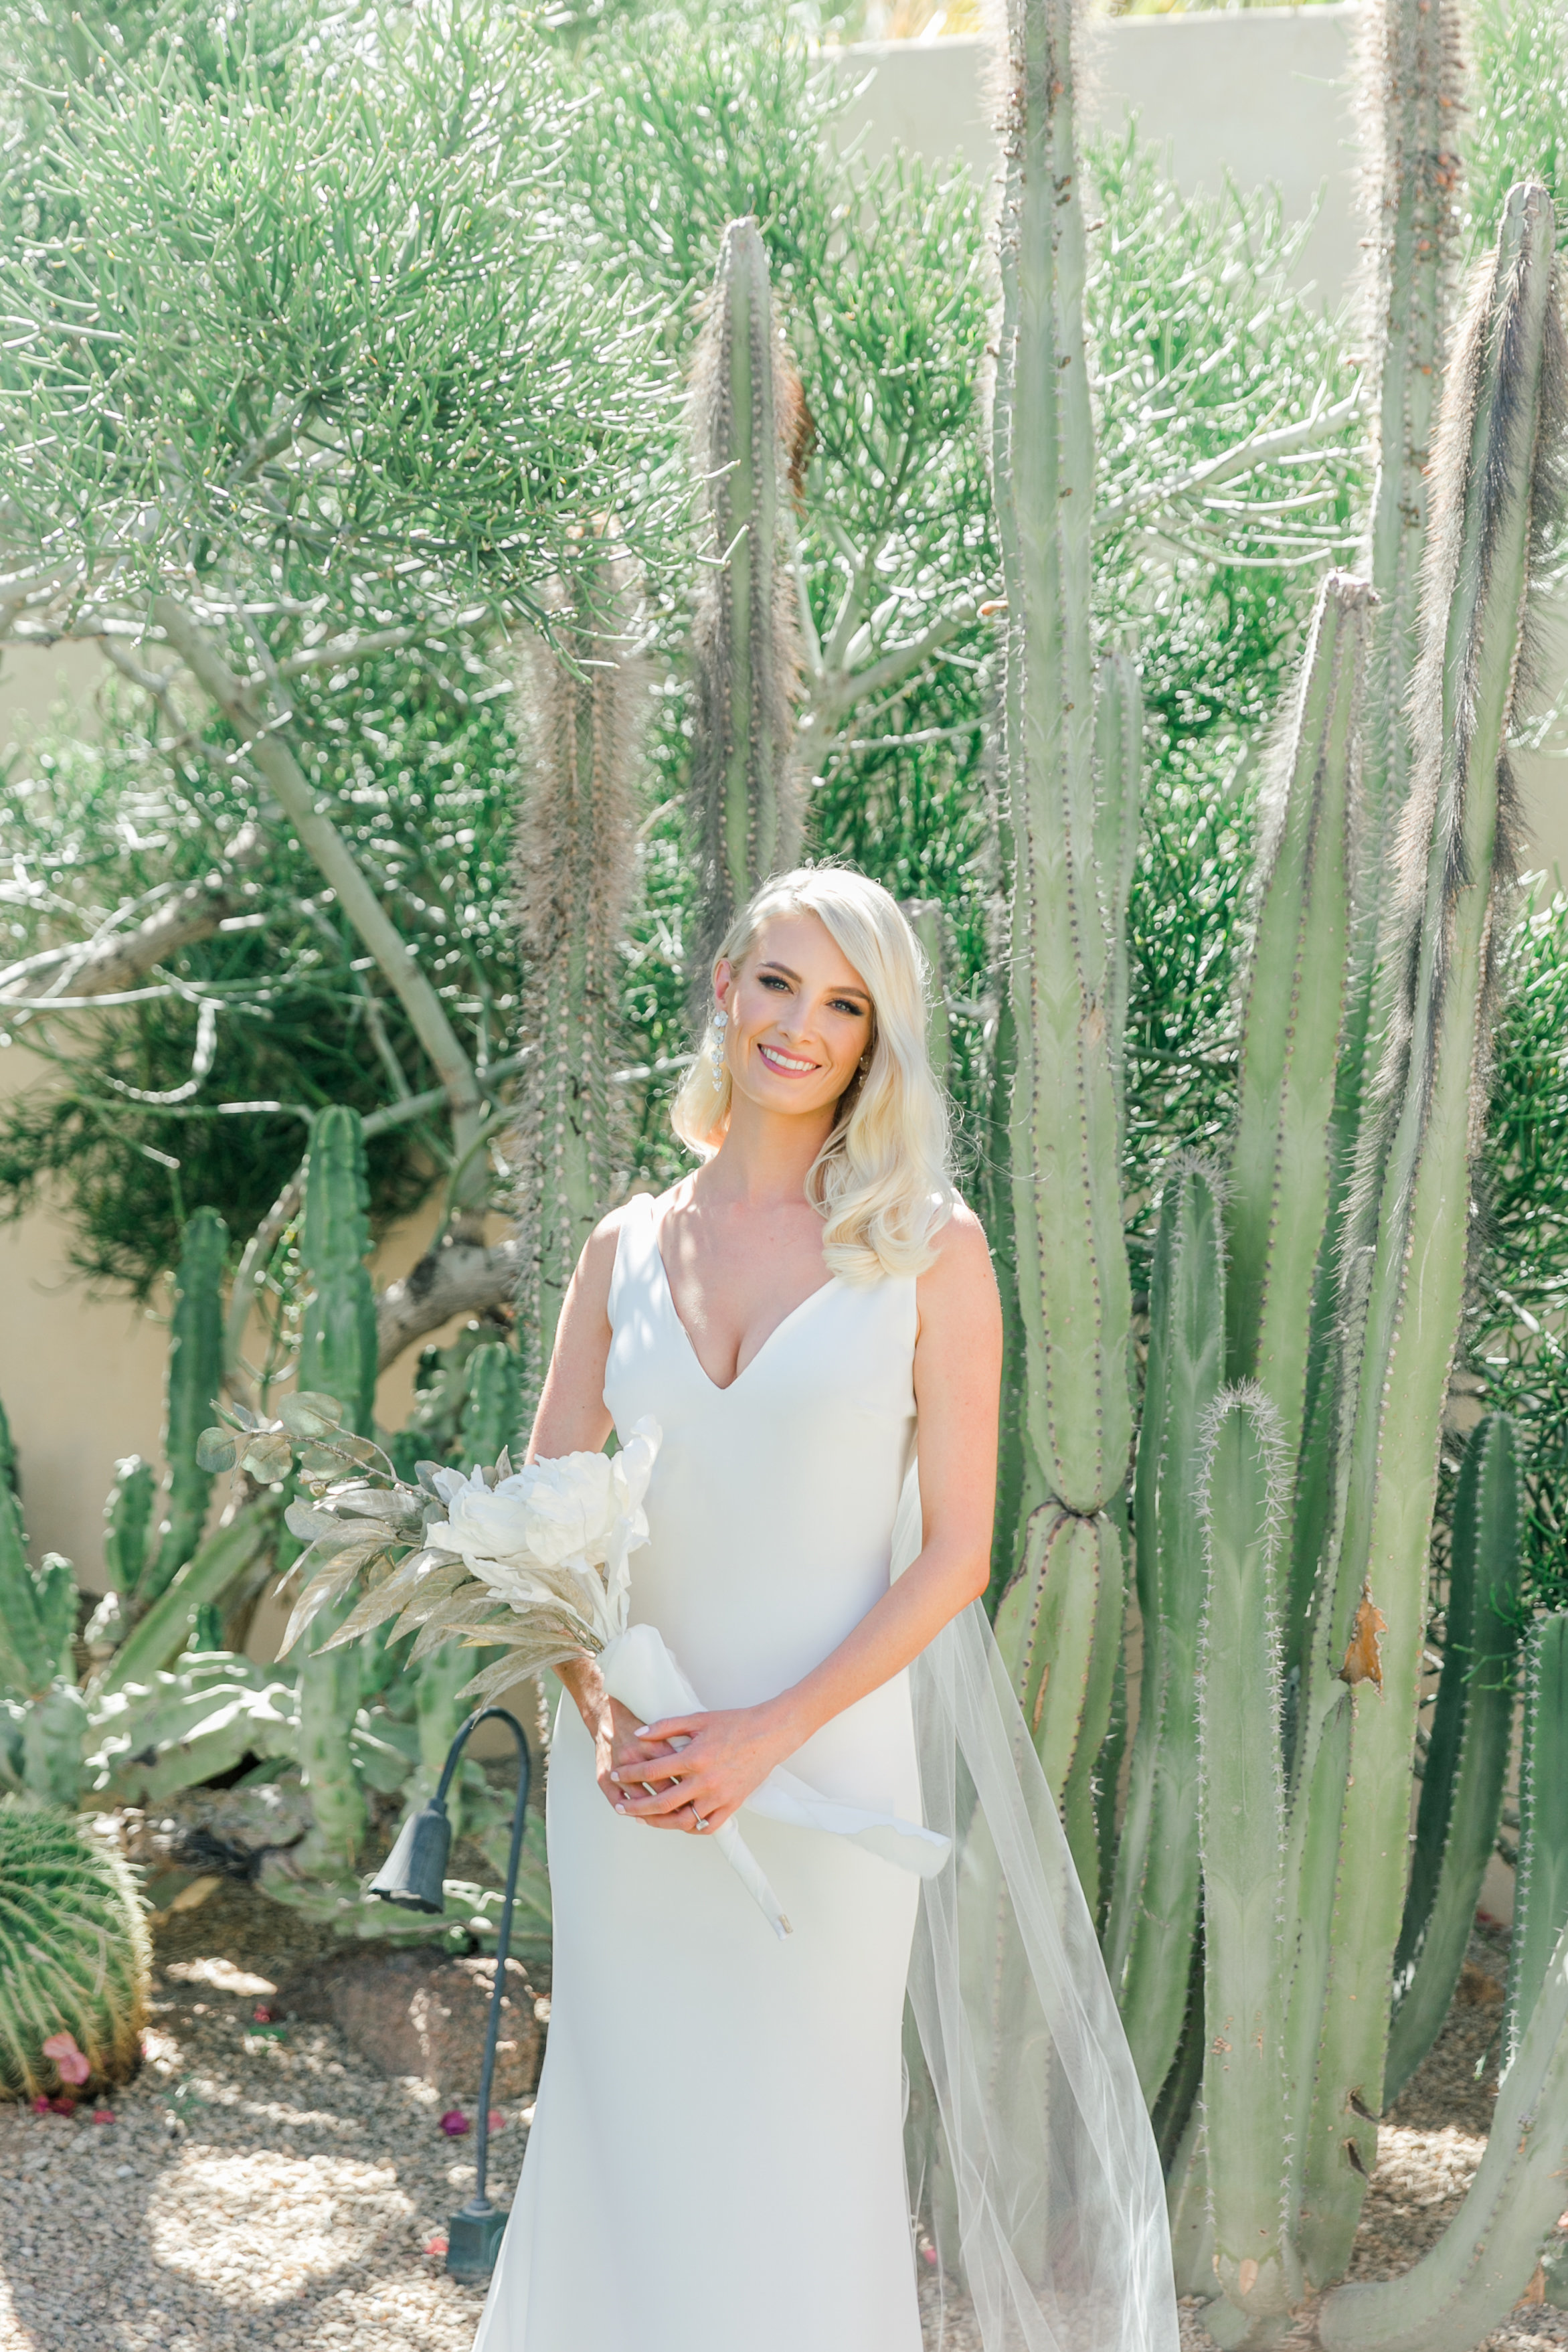 Karlie Colleen Photography - Arizona Wedding - Royal Palms Resort- Alex & Alex-58